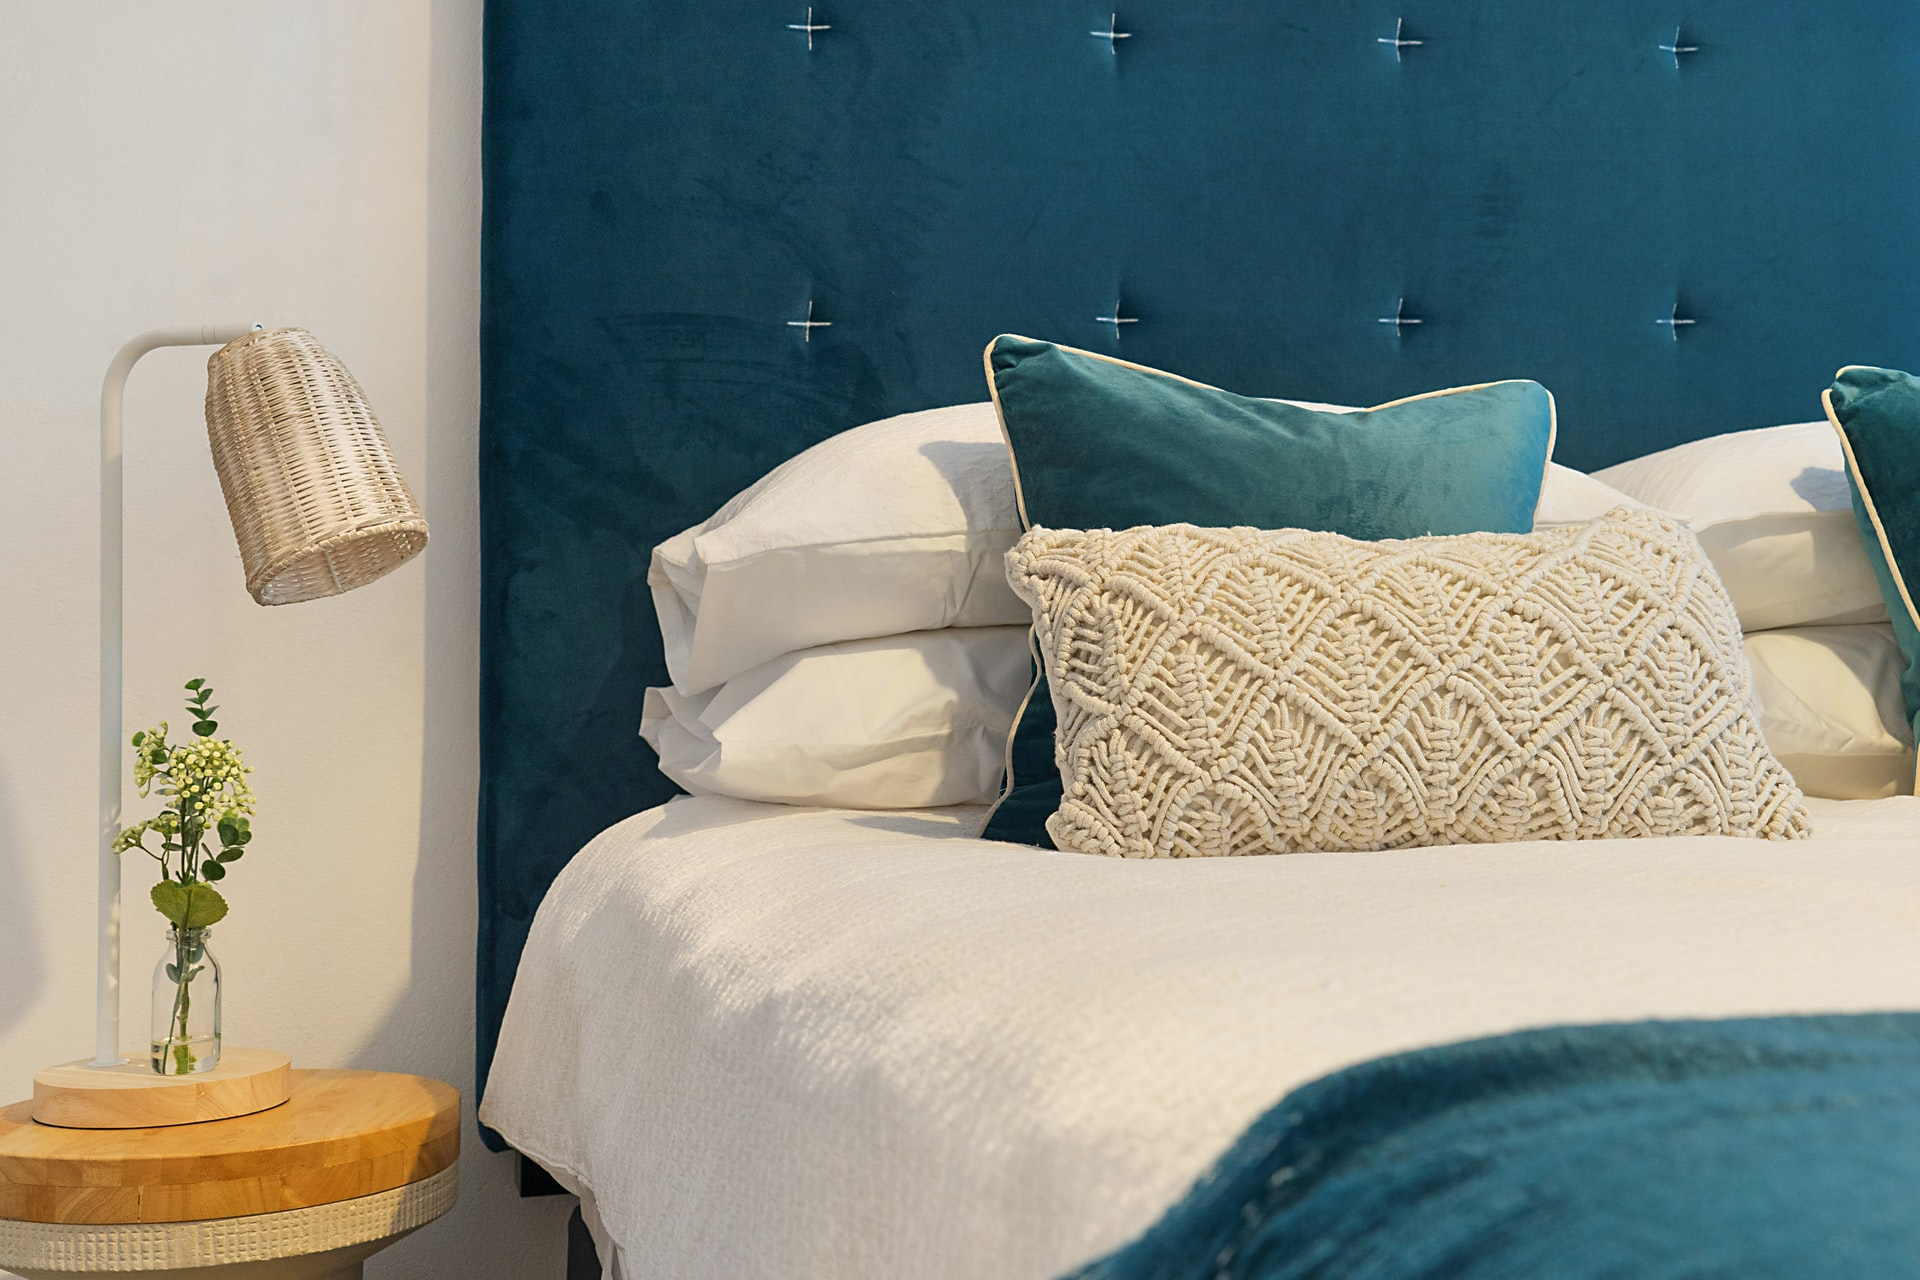 Are Luxury Bed Necessary For A Beautiful Home?